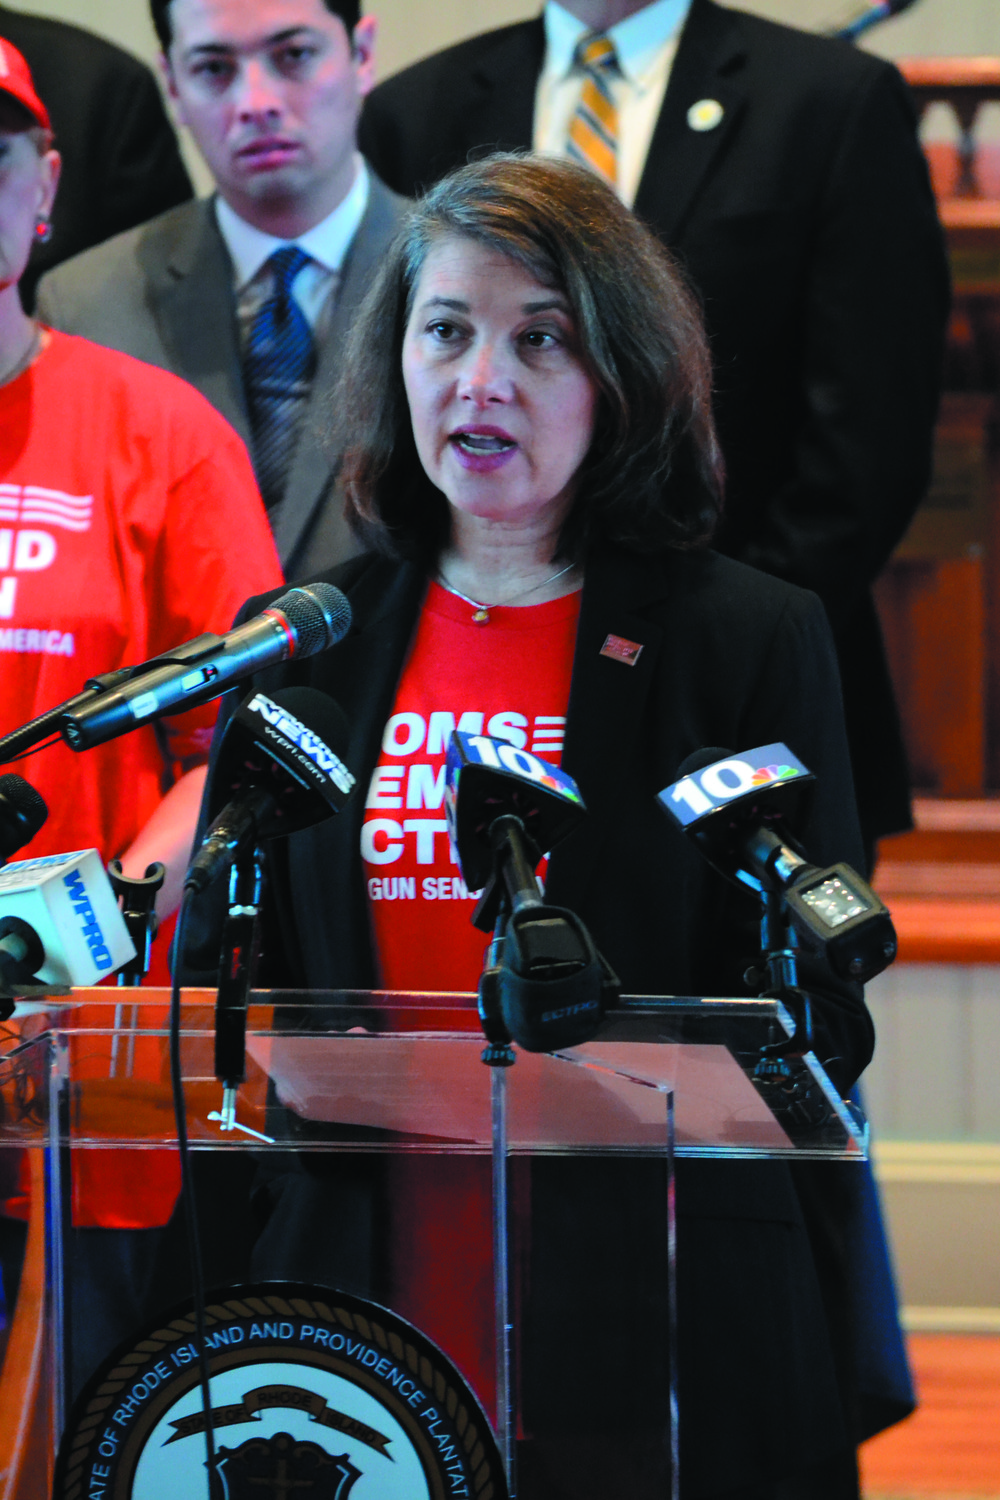 ACTION URGED: Jennifer Boylen, a volunteer advocate for the RI chapter of Moms Demand Action, a pro-gun control group that formed in the wake of Sandy Hook, speaks at the executive order signing on Monday.     (Warwick Beacon photos)